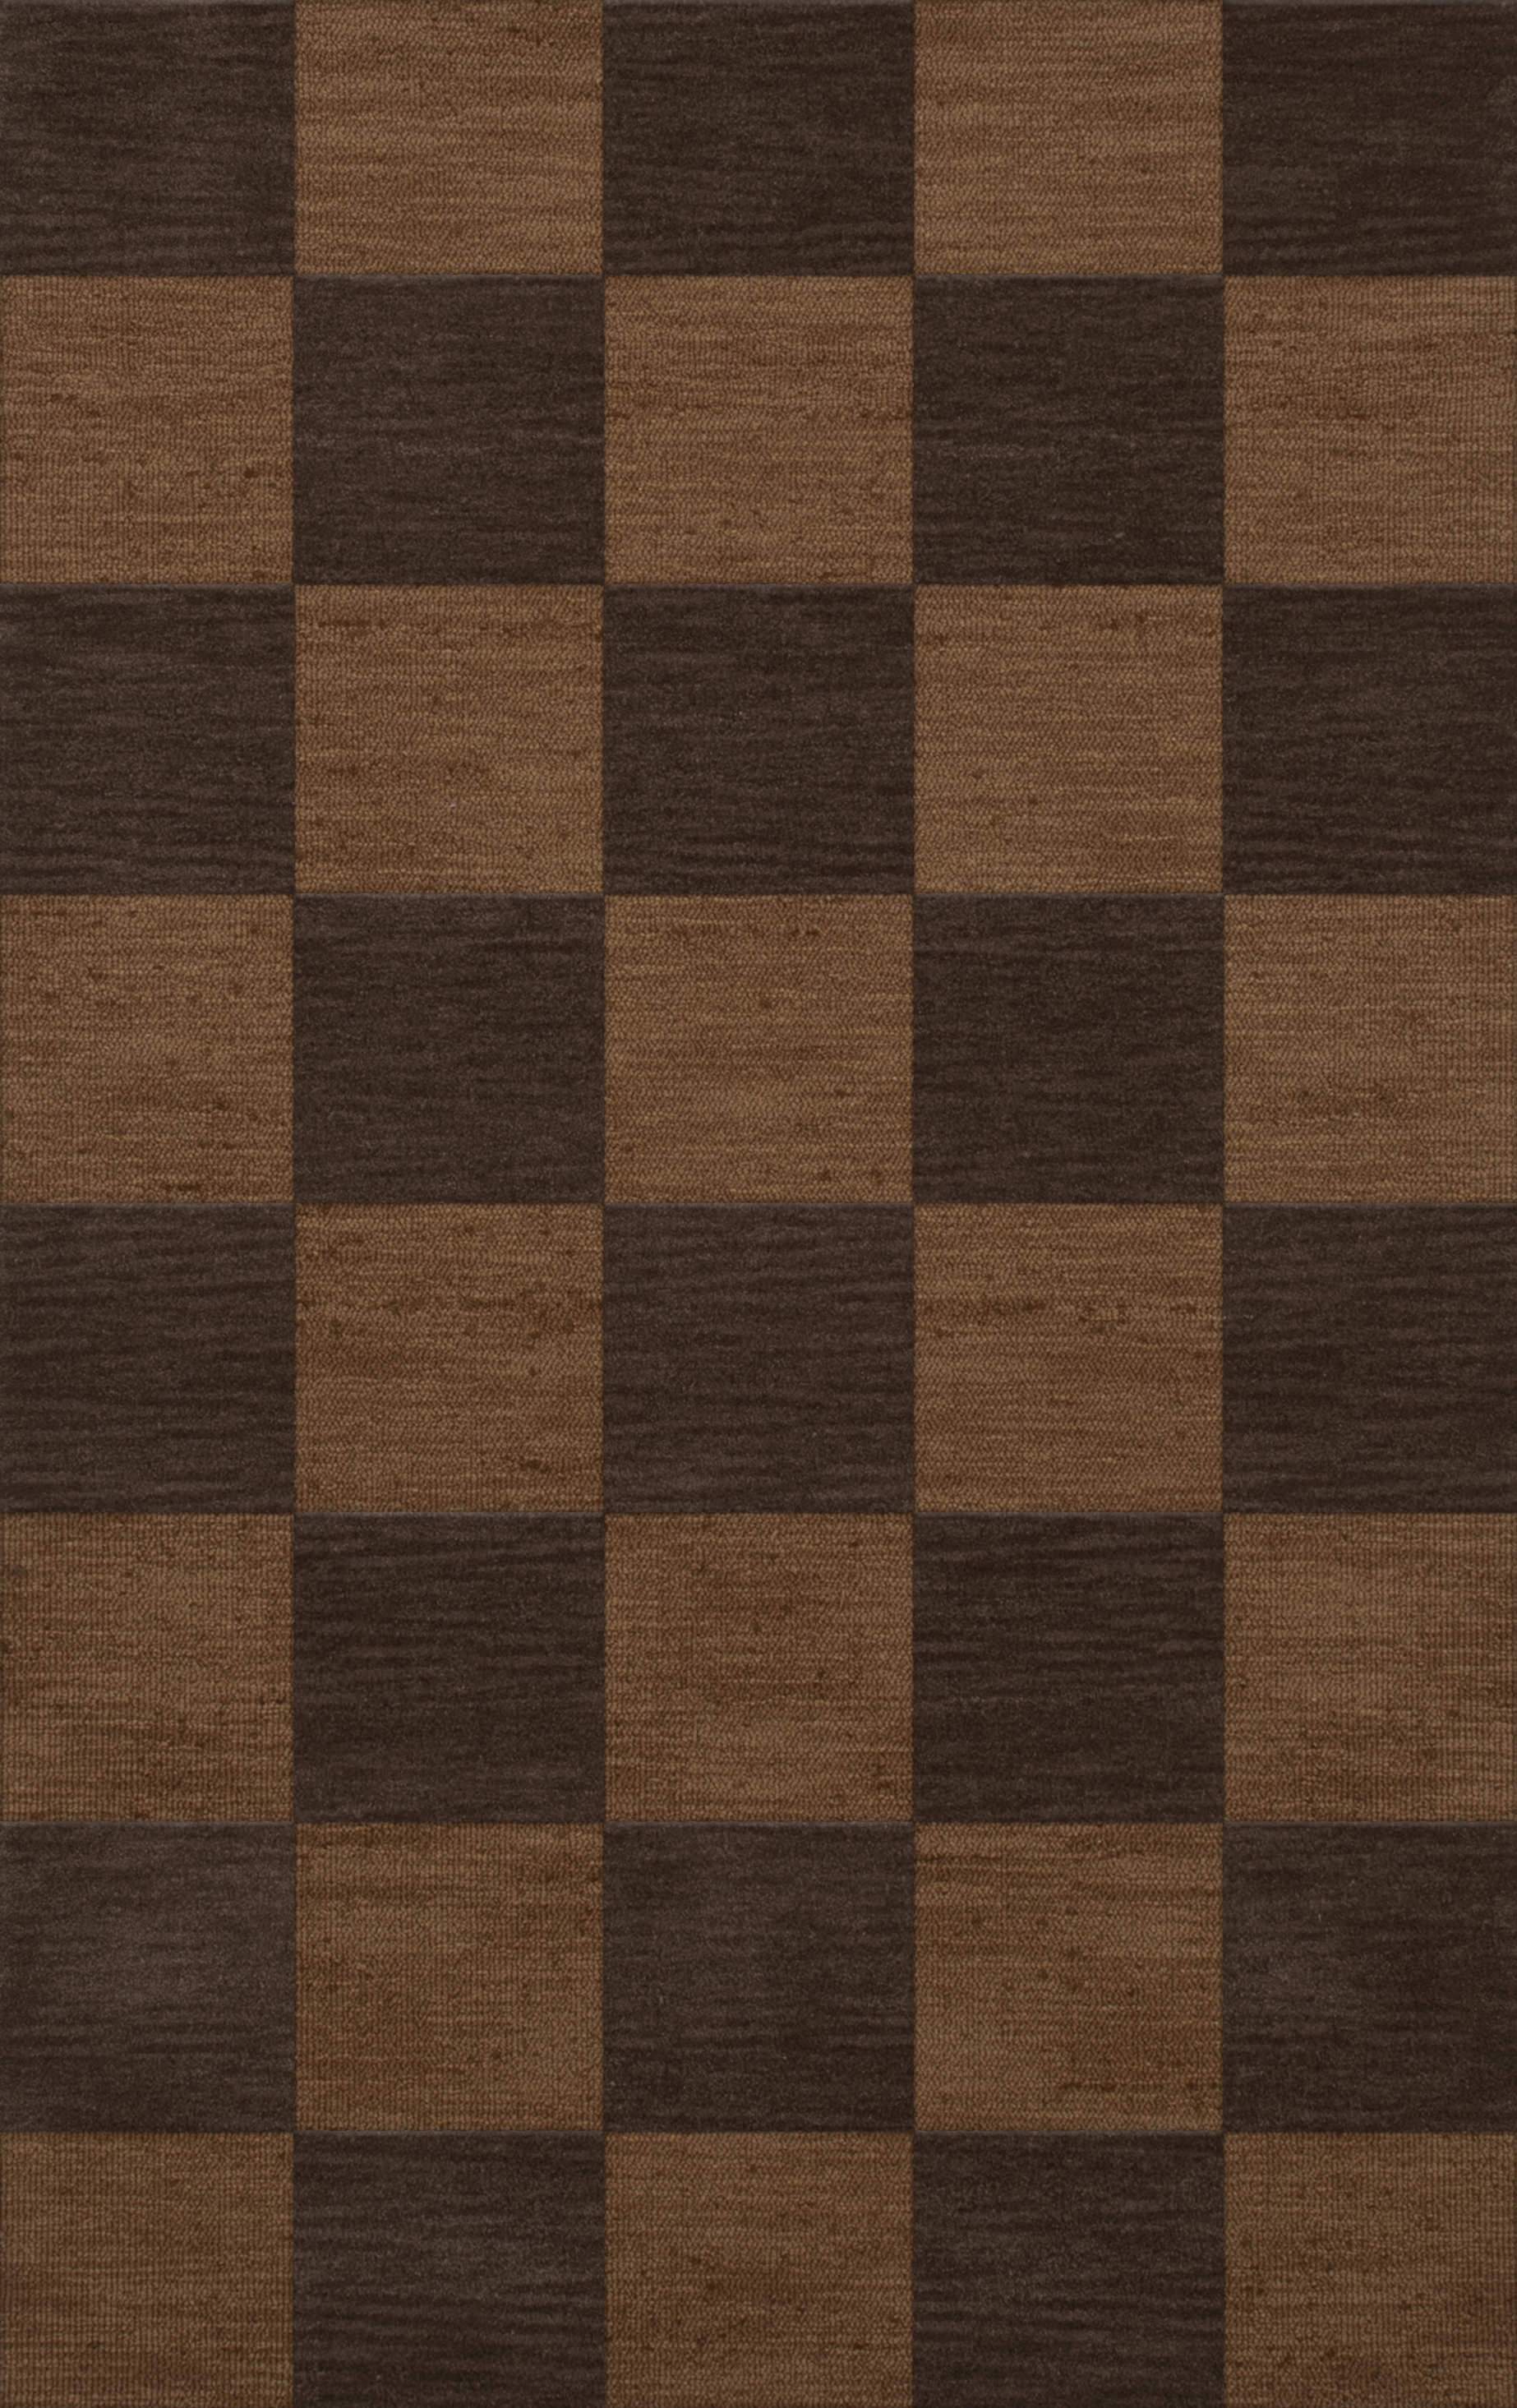 wonderful checked dalyn rugs in brown for floor decor ideas